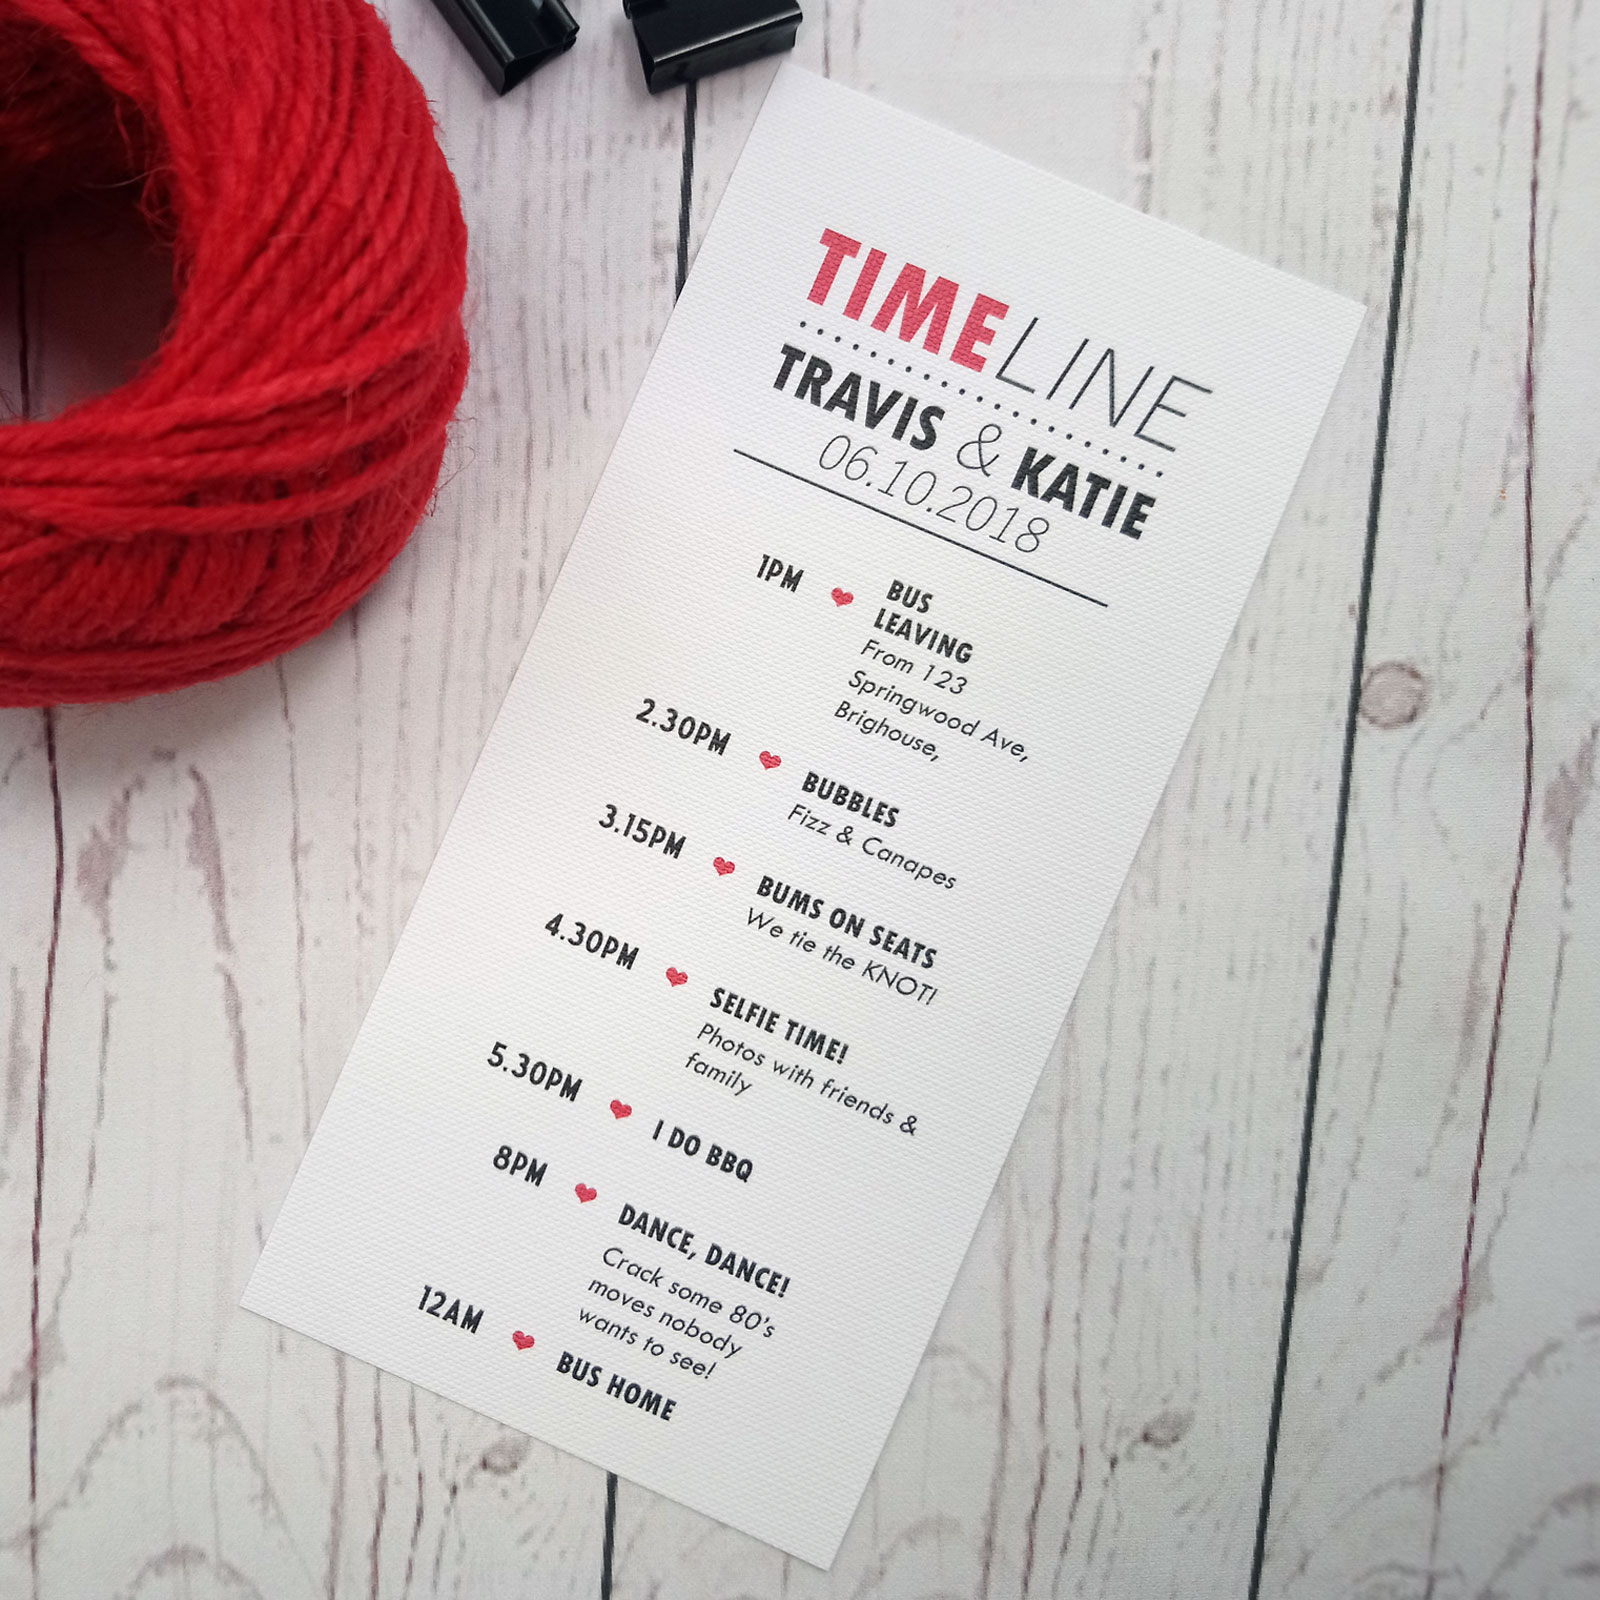 Movie Concert Photo Ticket Wedding Timeline in red and black